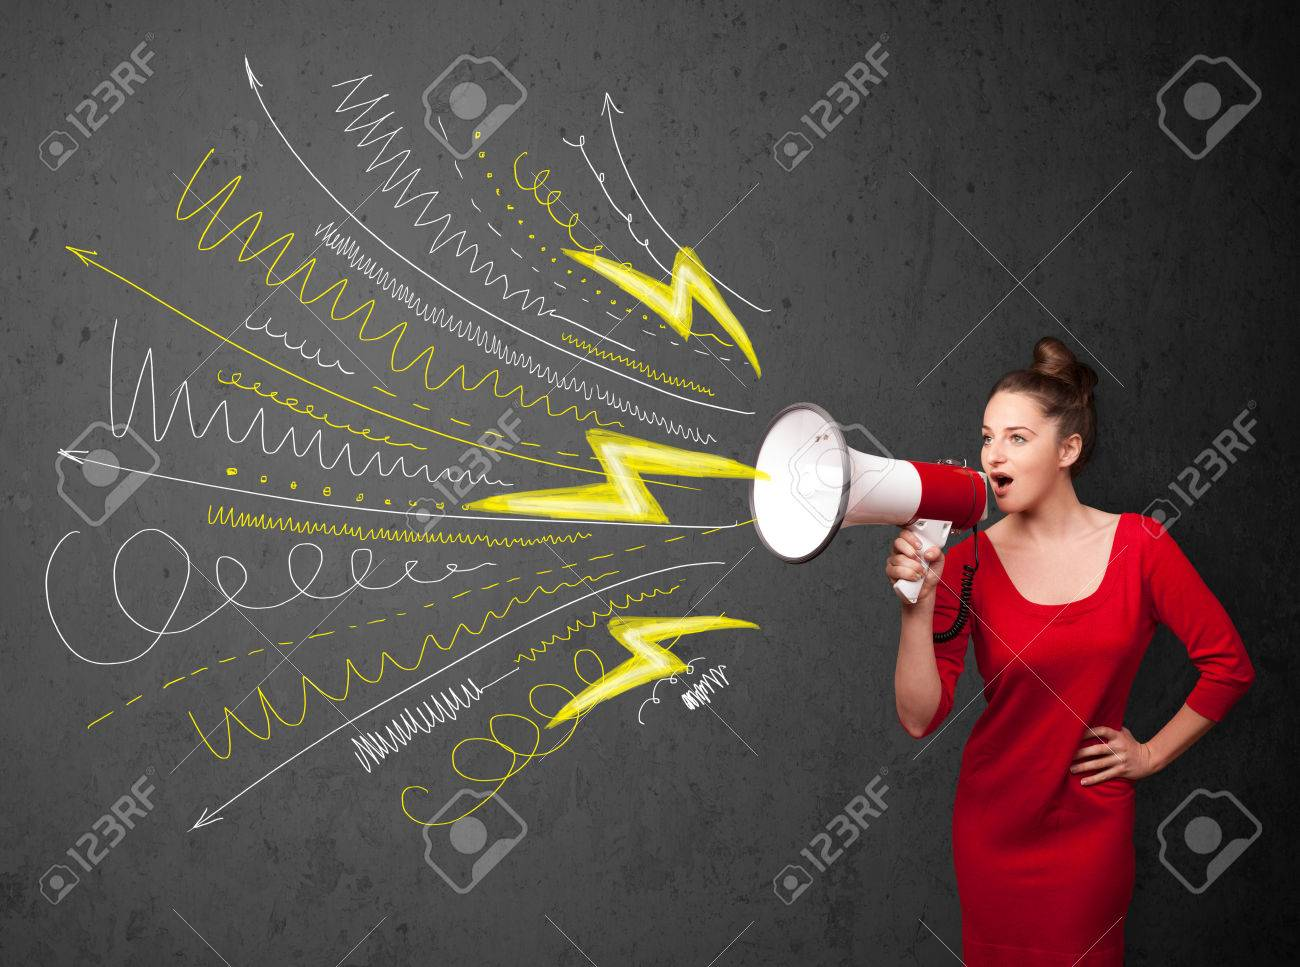 Cute girl shouting into megaphone with hand drawn lines and arrows on grungy background Stock Photo - 24279098